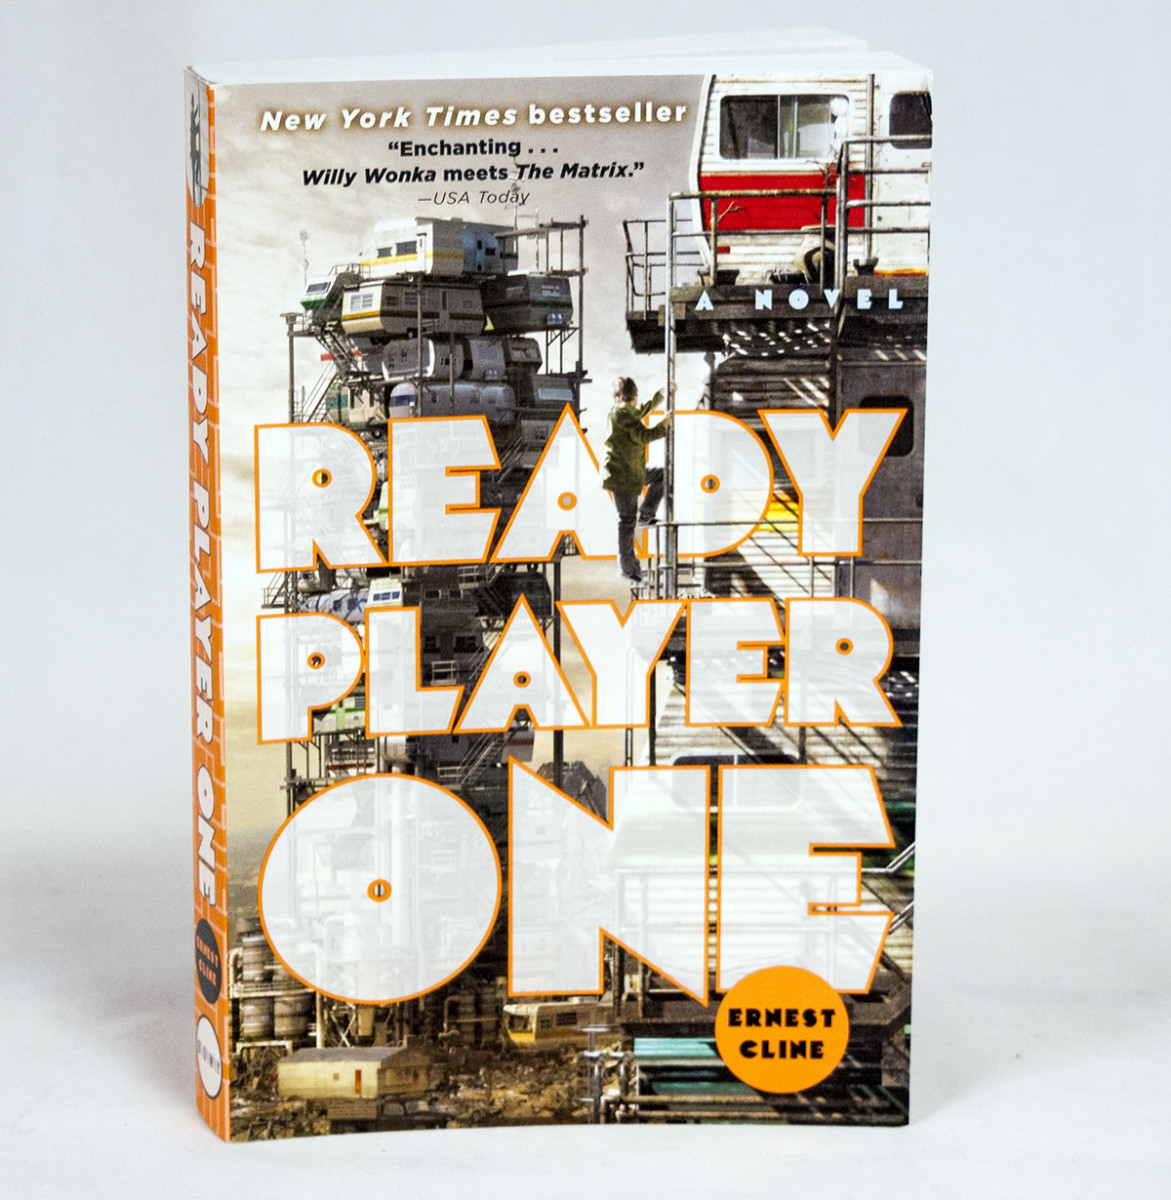 The book cover for Ready Player One